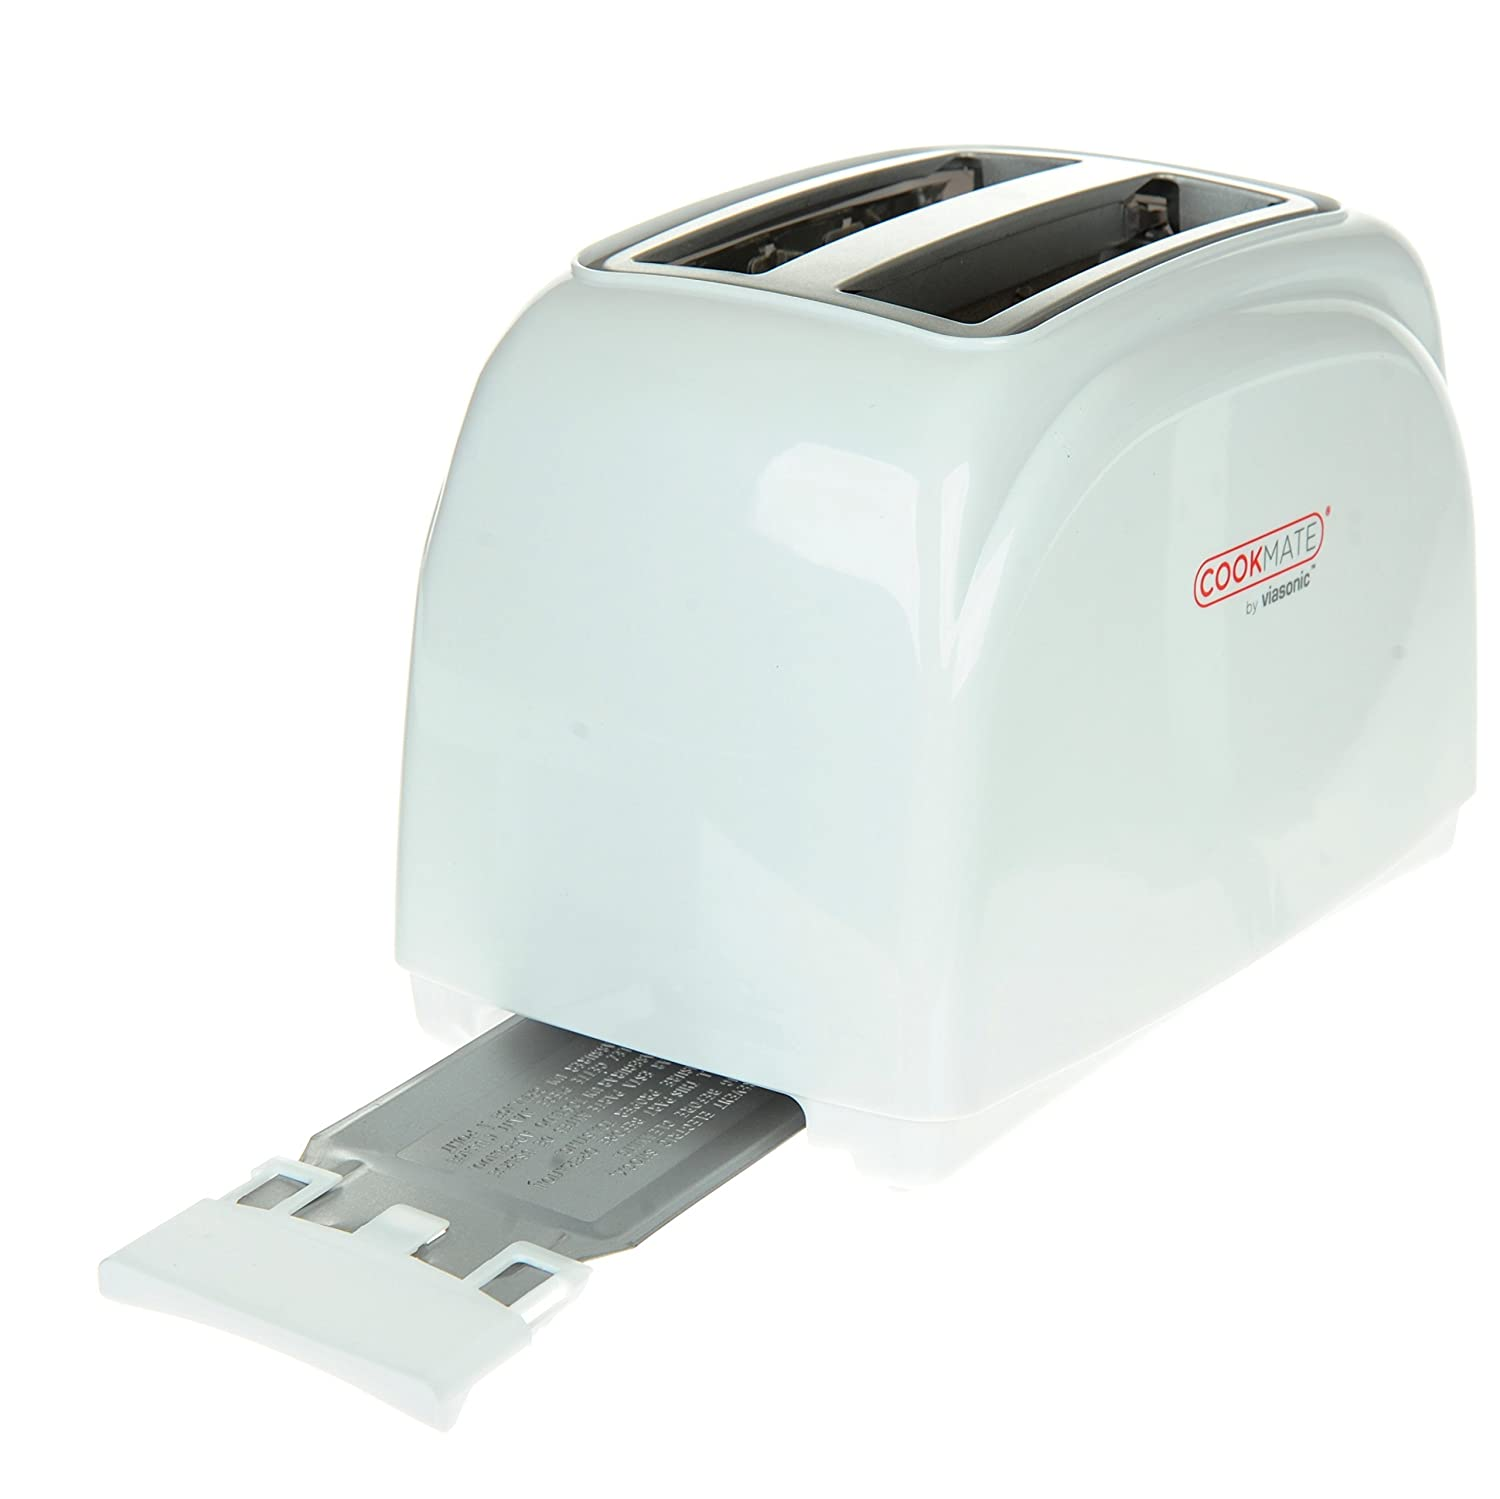 By Unity 7 Temperature Levels 750W ETL-Listed Quick Bagel Button Sleek Unibody Frame Cookmate 2-Slice Toaster